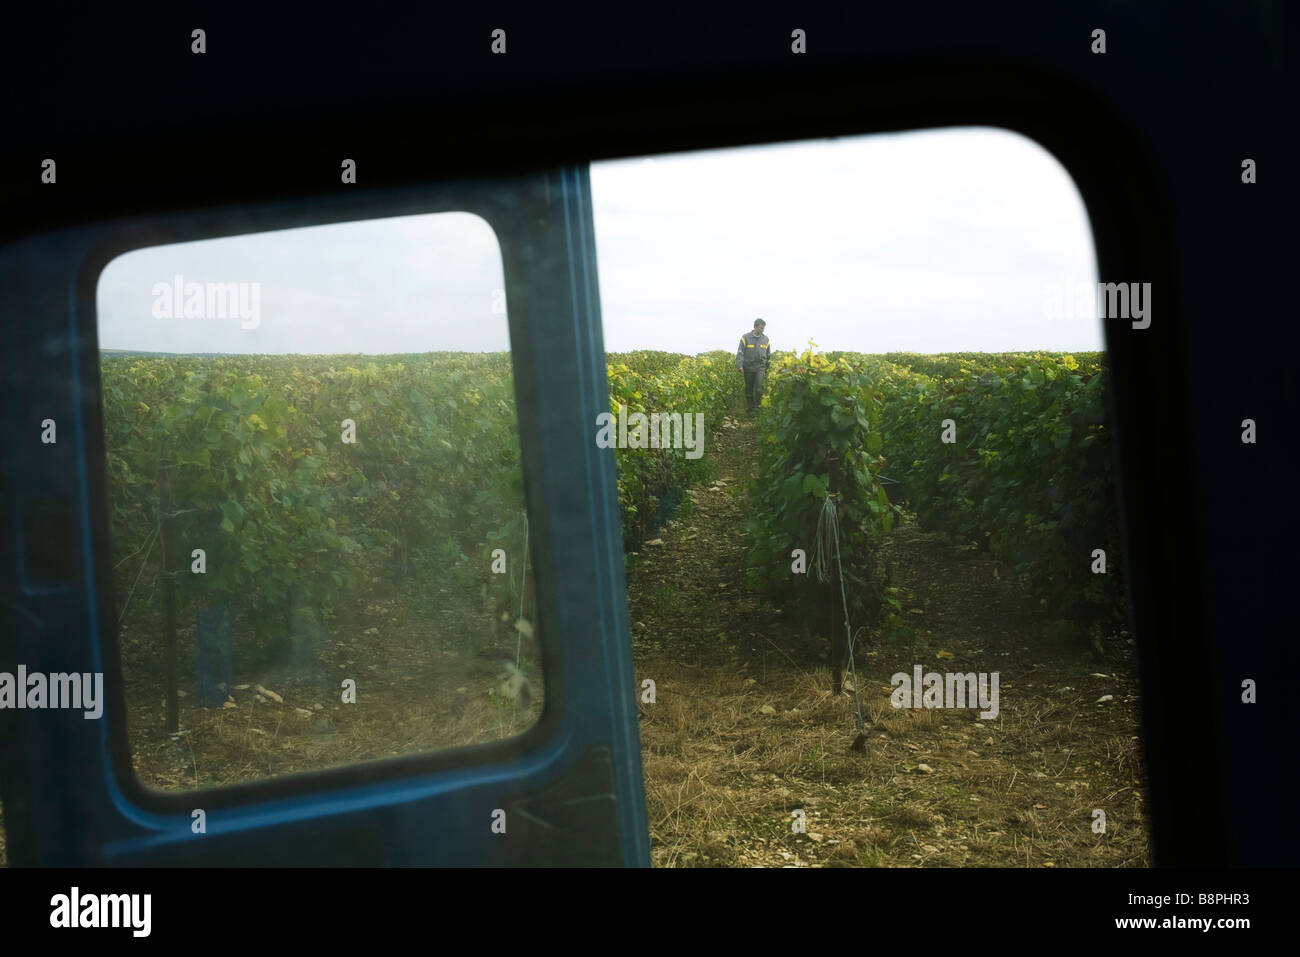 France, Champagne-Ardenne, Aube, vineyard viewed through truck window - Stock Image